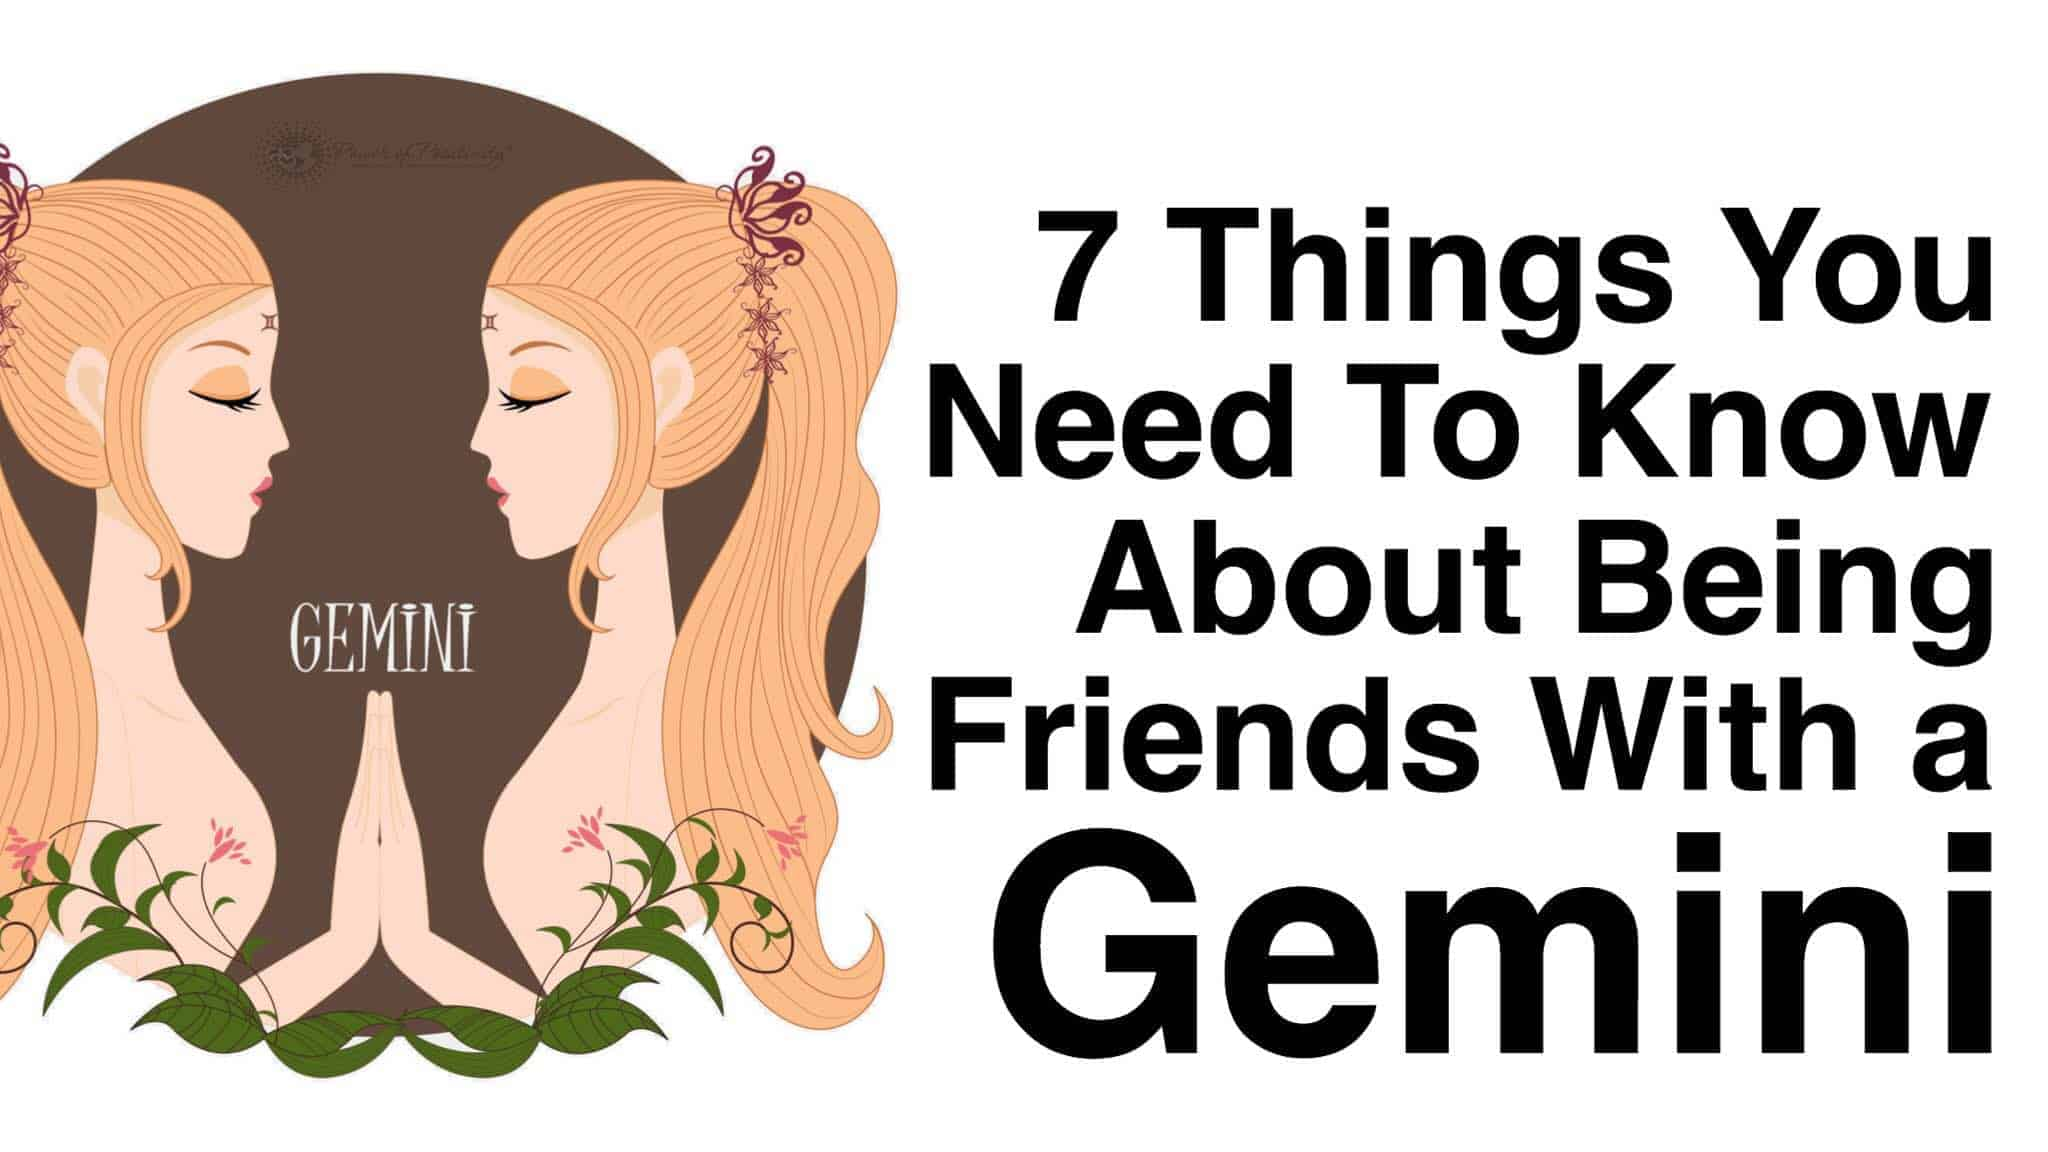 7 Things You Need To Know About Being Friends With A Gemini